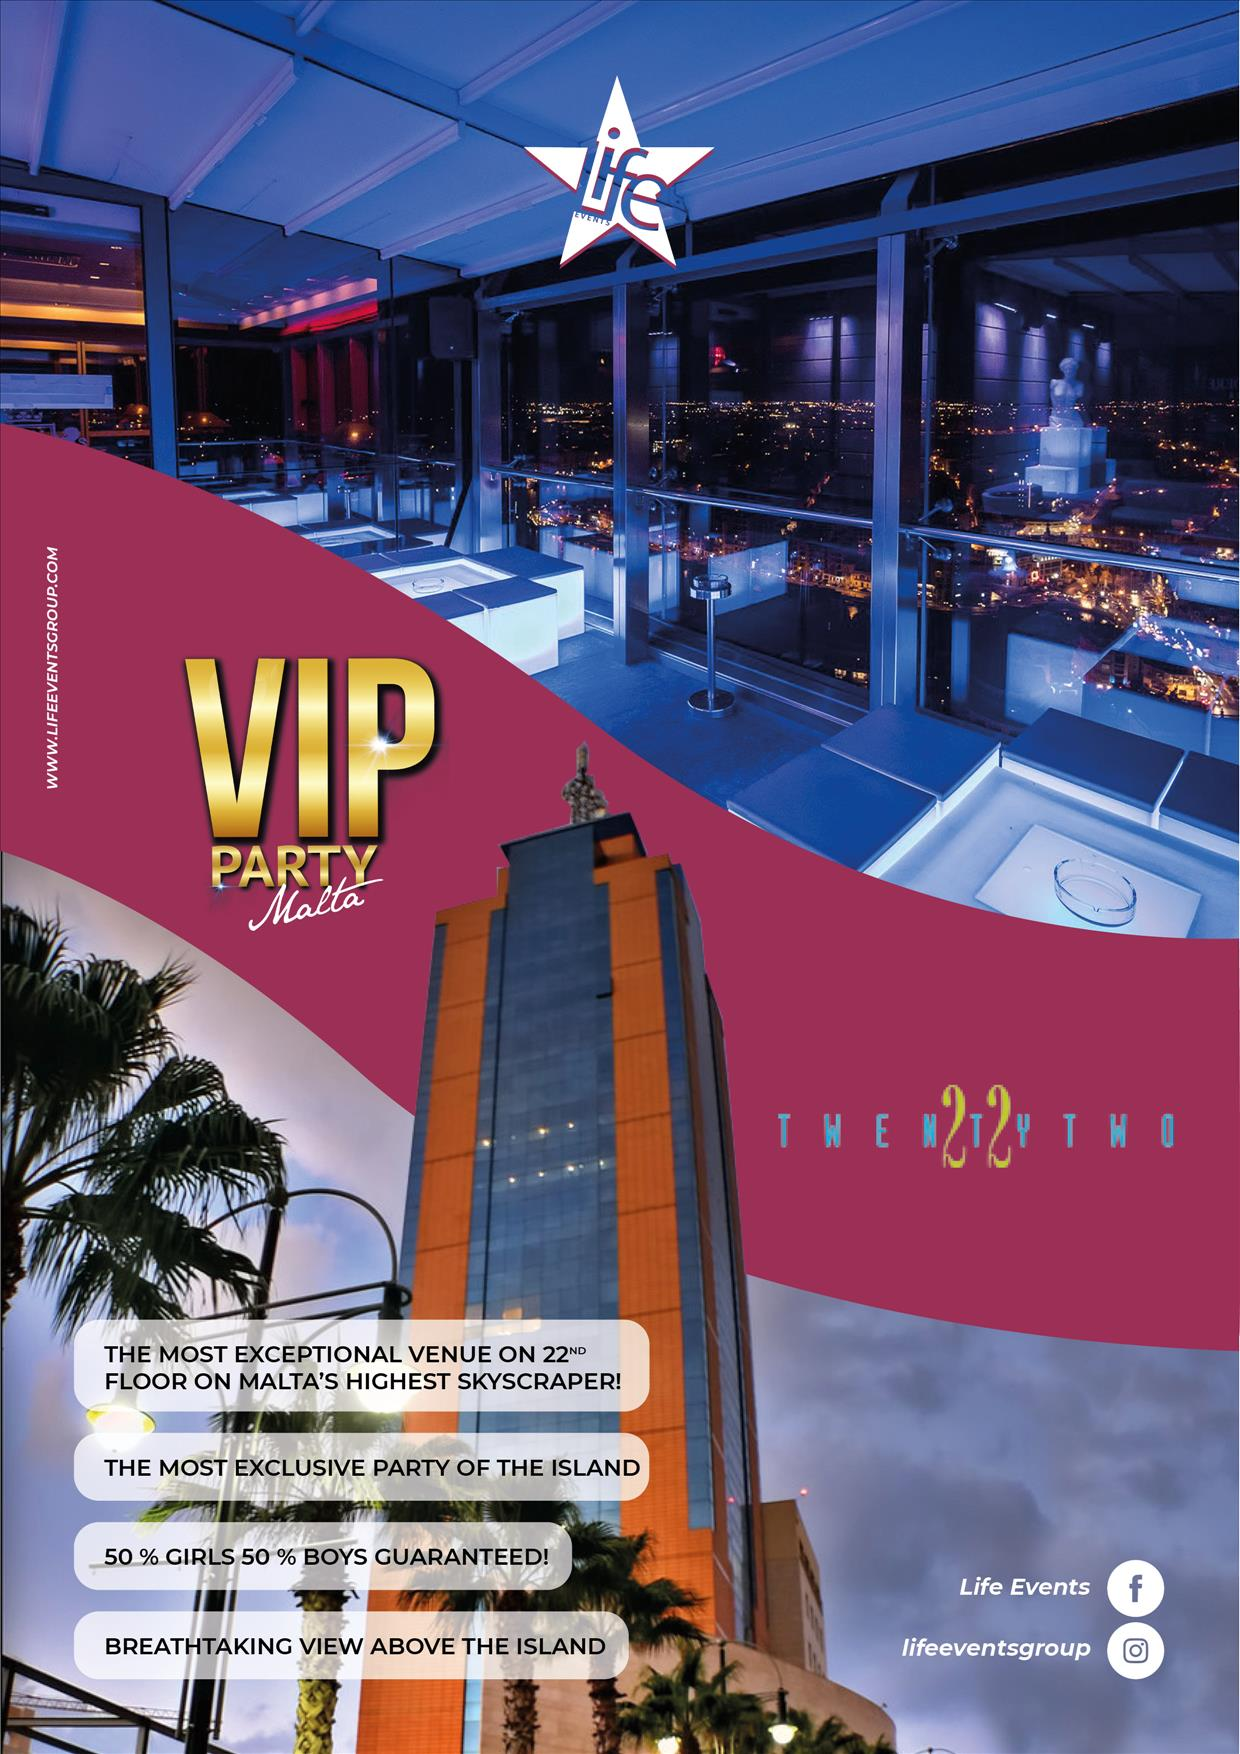 VIP Party Malta by Life Events flyer